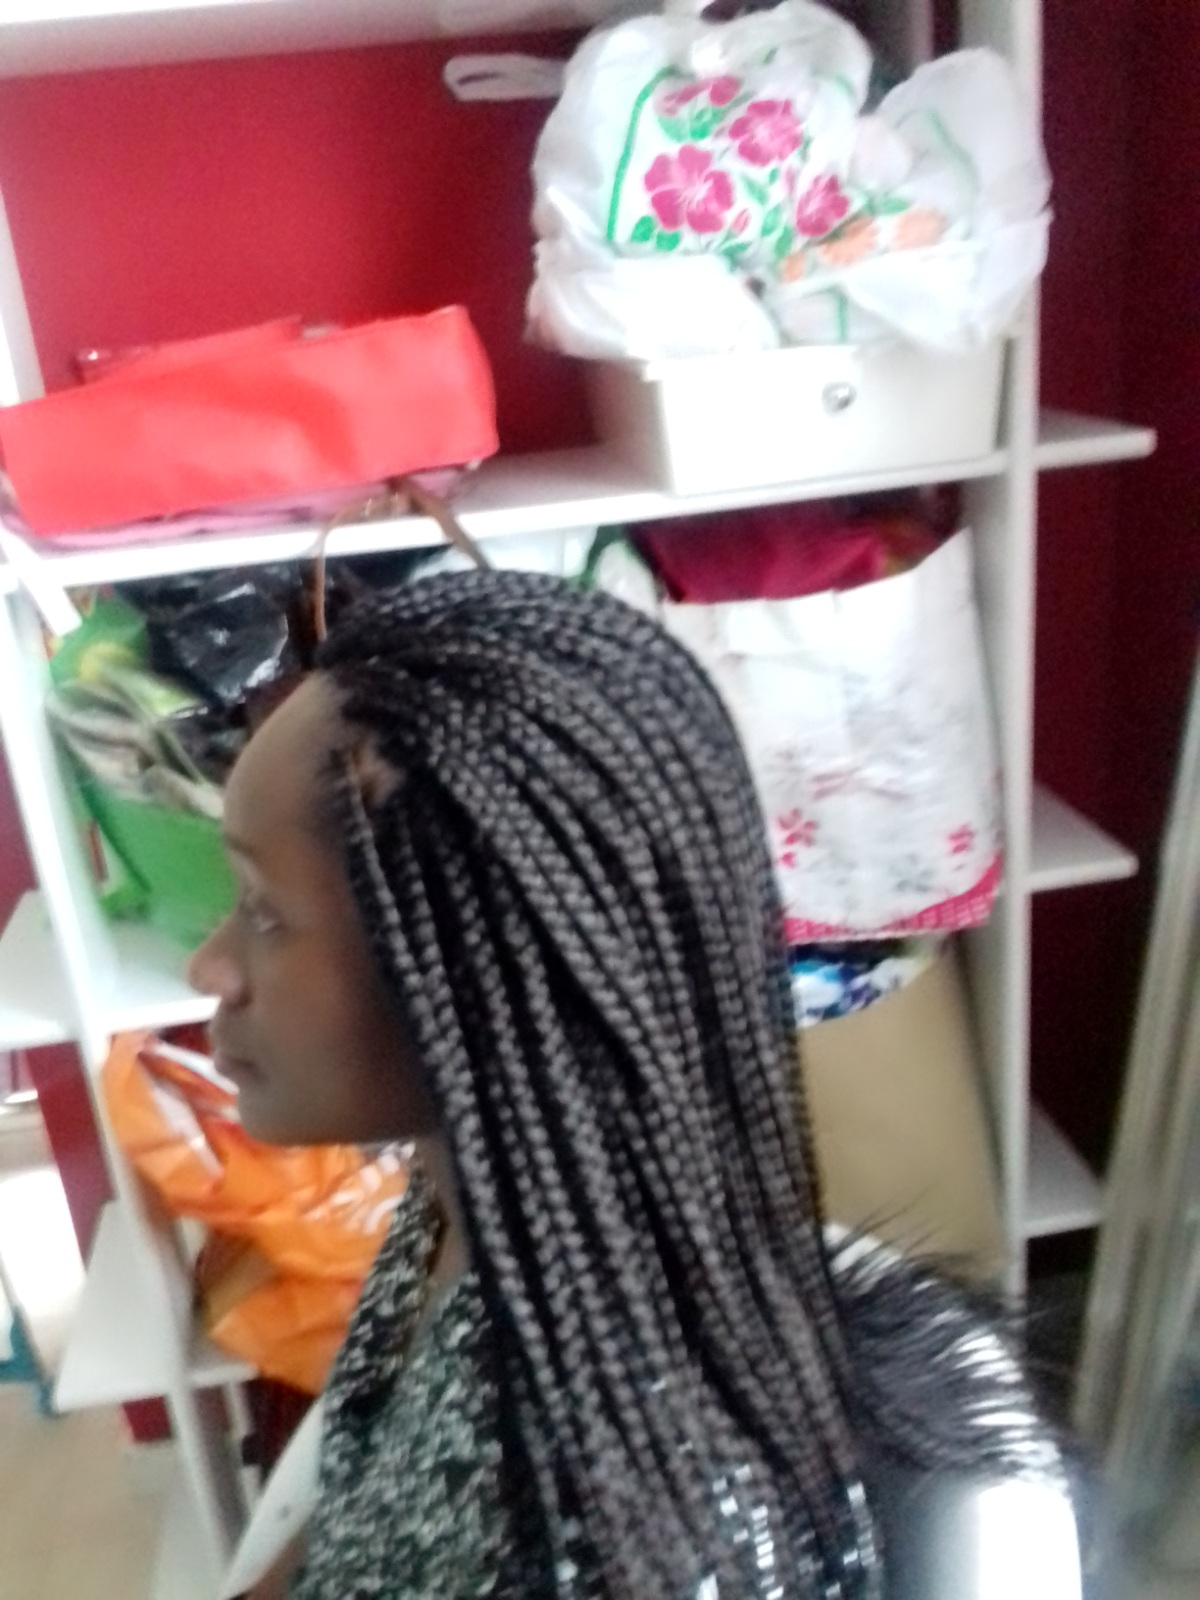 salon de coiffure afro tresse tresses box braids crochet braids vanilles tissages paris 75 77 78 91 92 93 94 95 QIBCZVZH